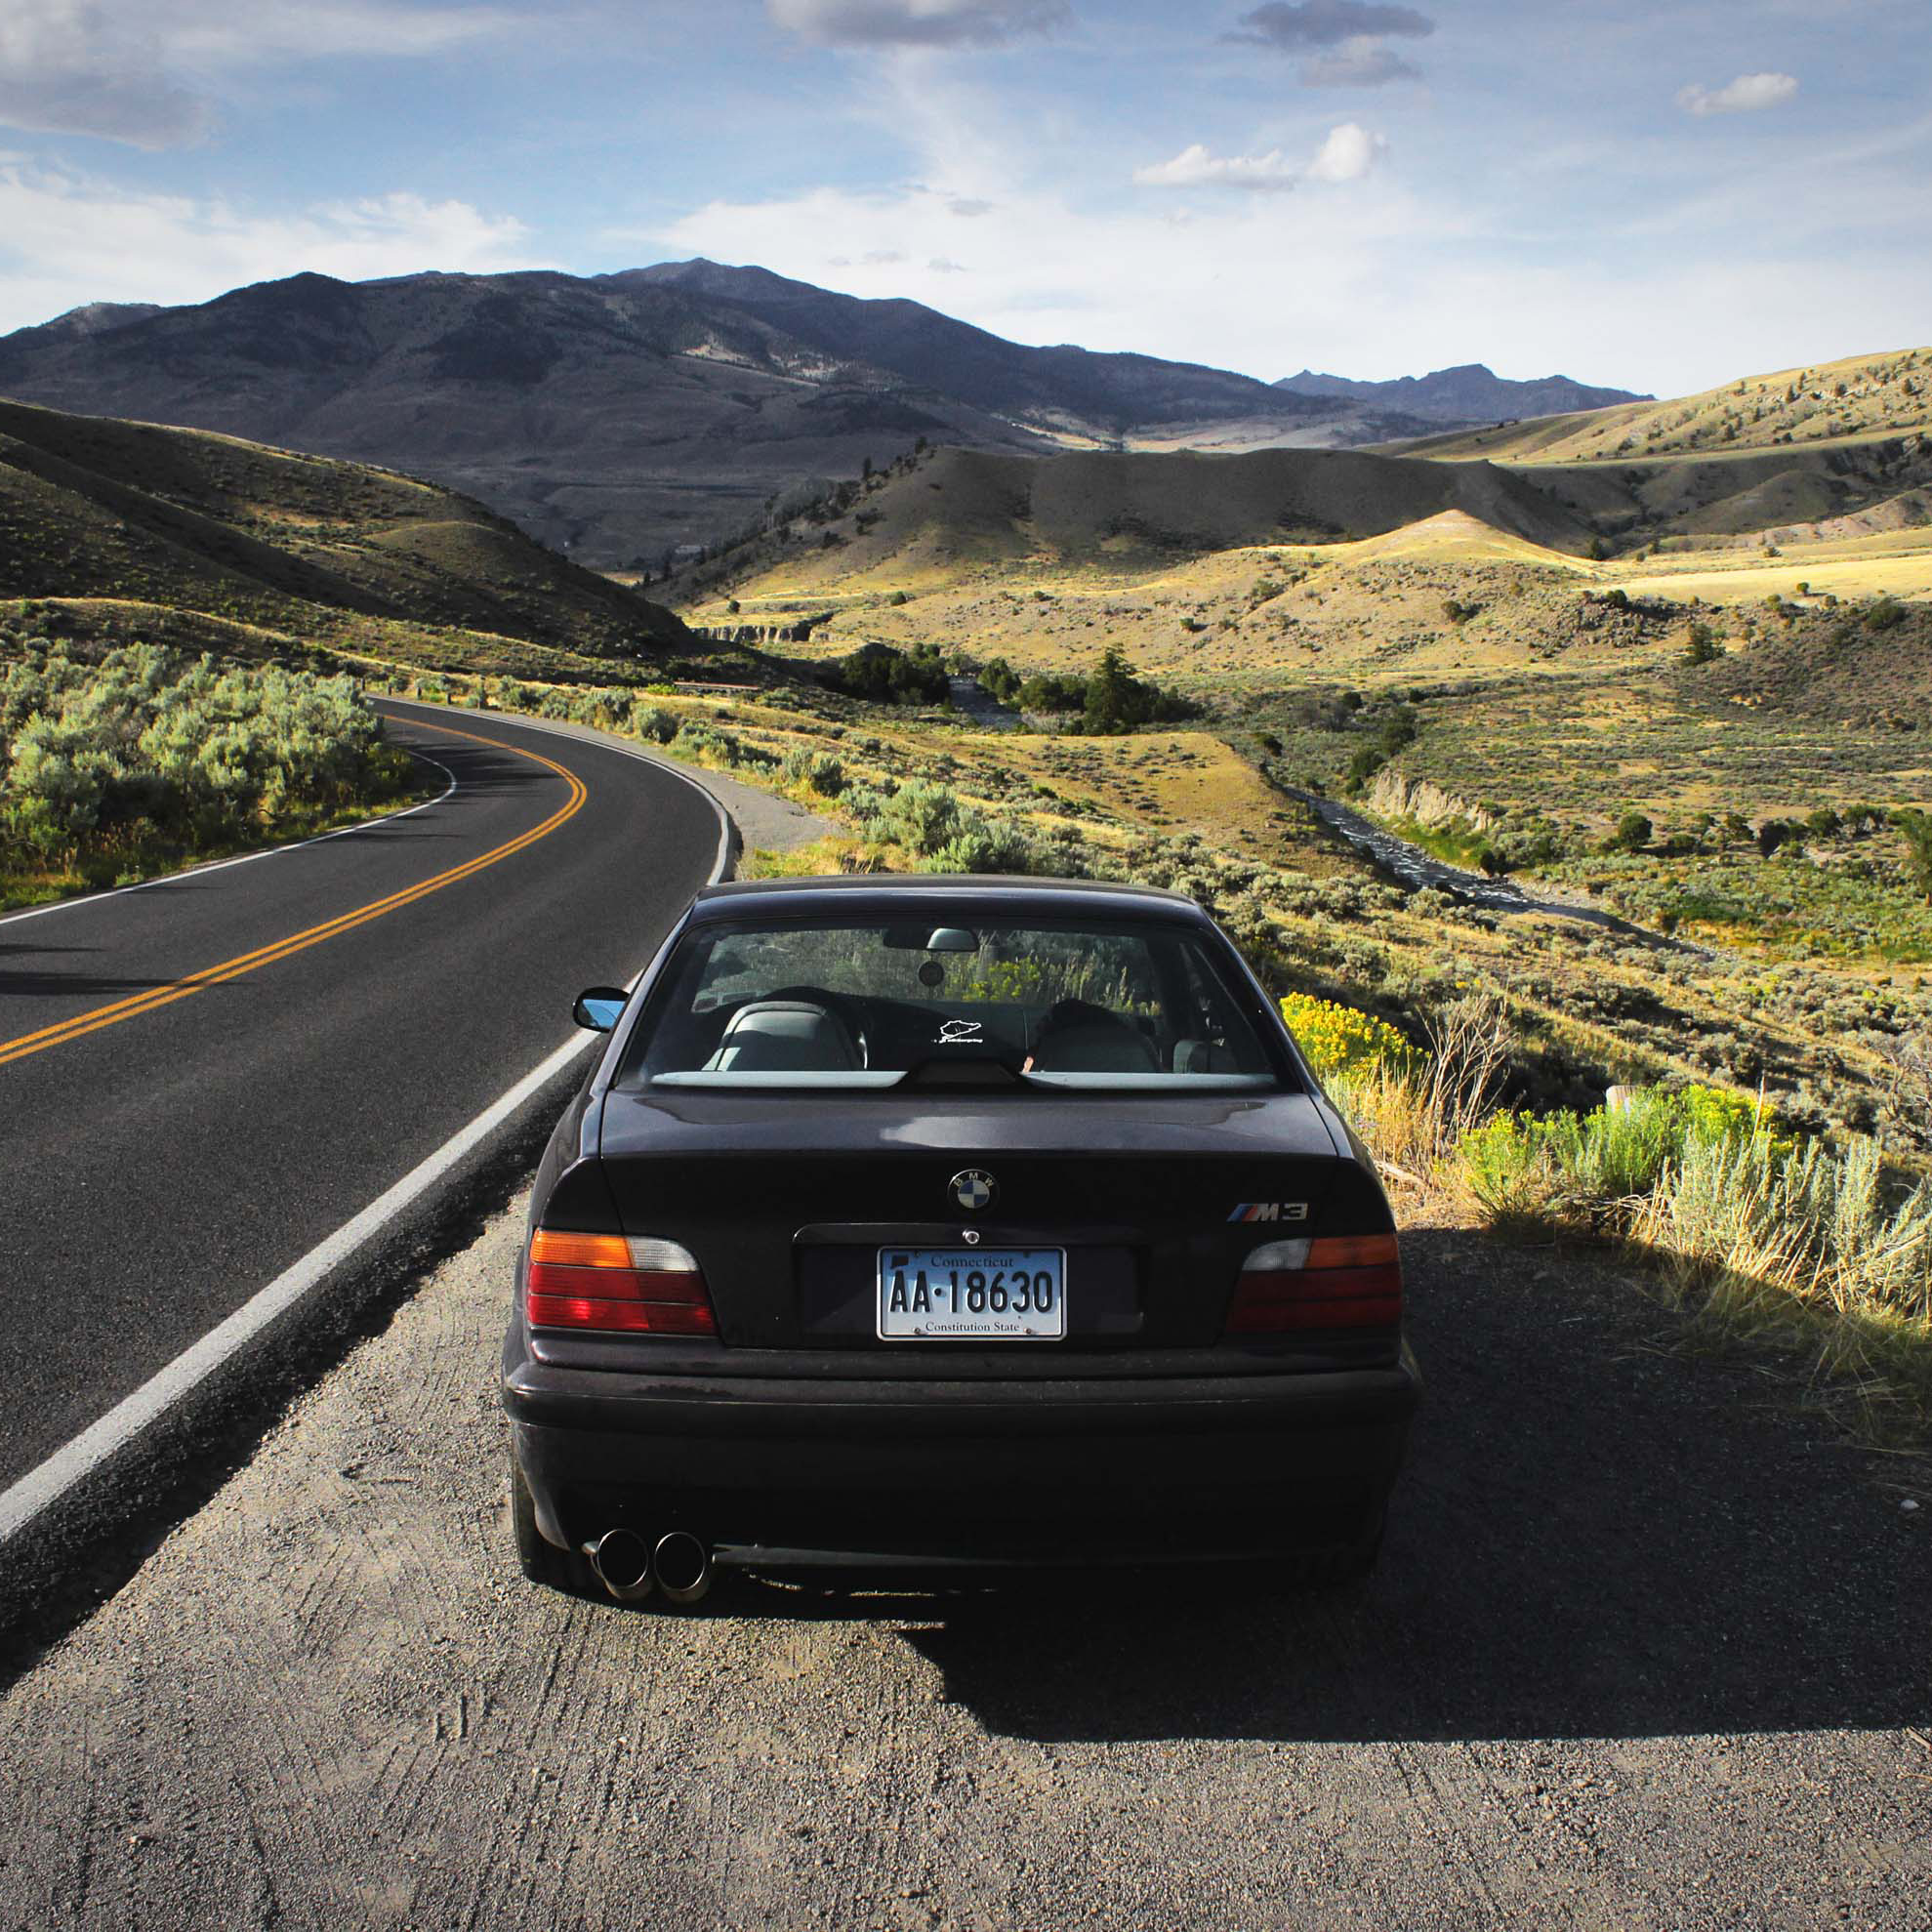 I Drove An E36 M3 To Monterey In Celebration of 100 Years of BMW Cars